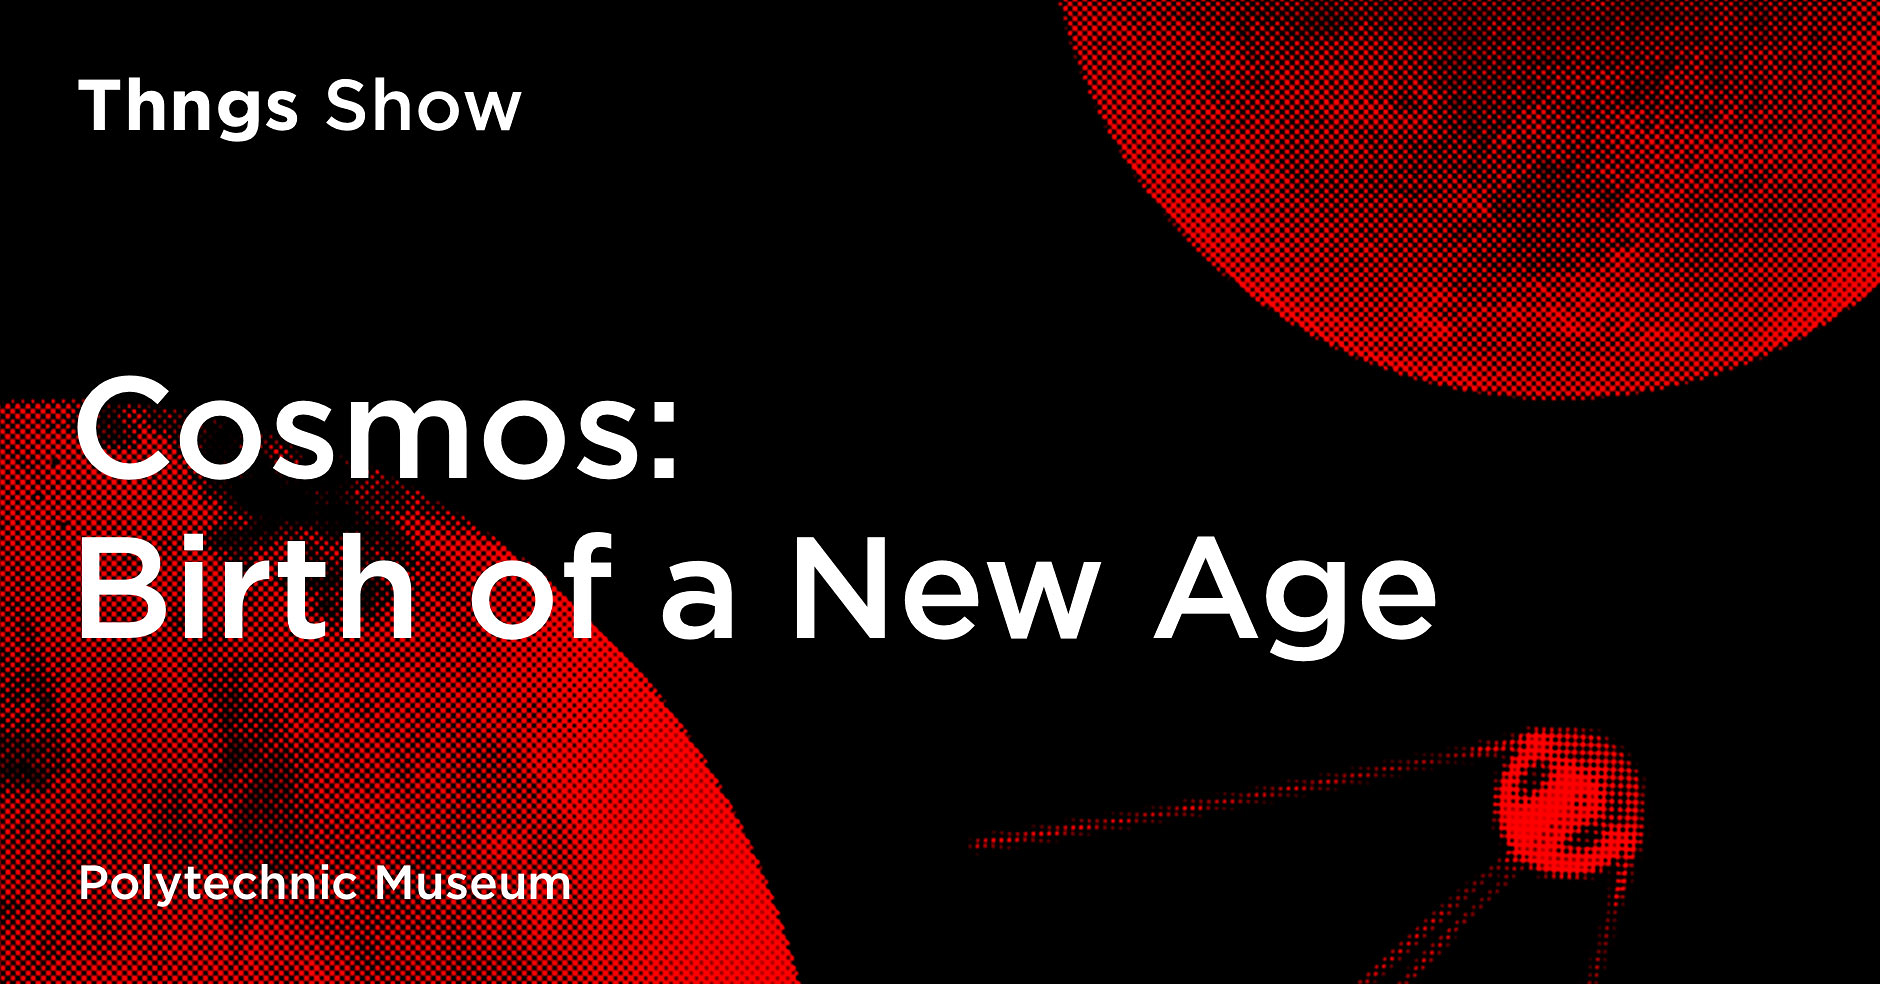 Cosmos: Birth of a New Age